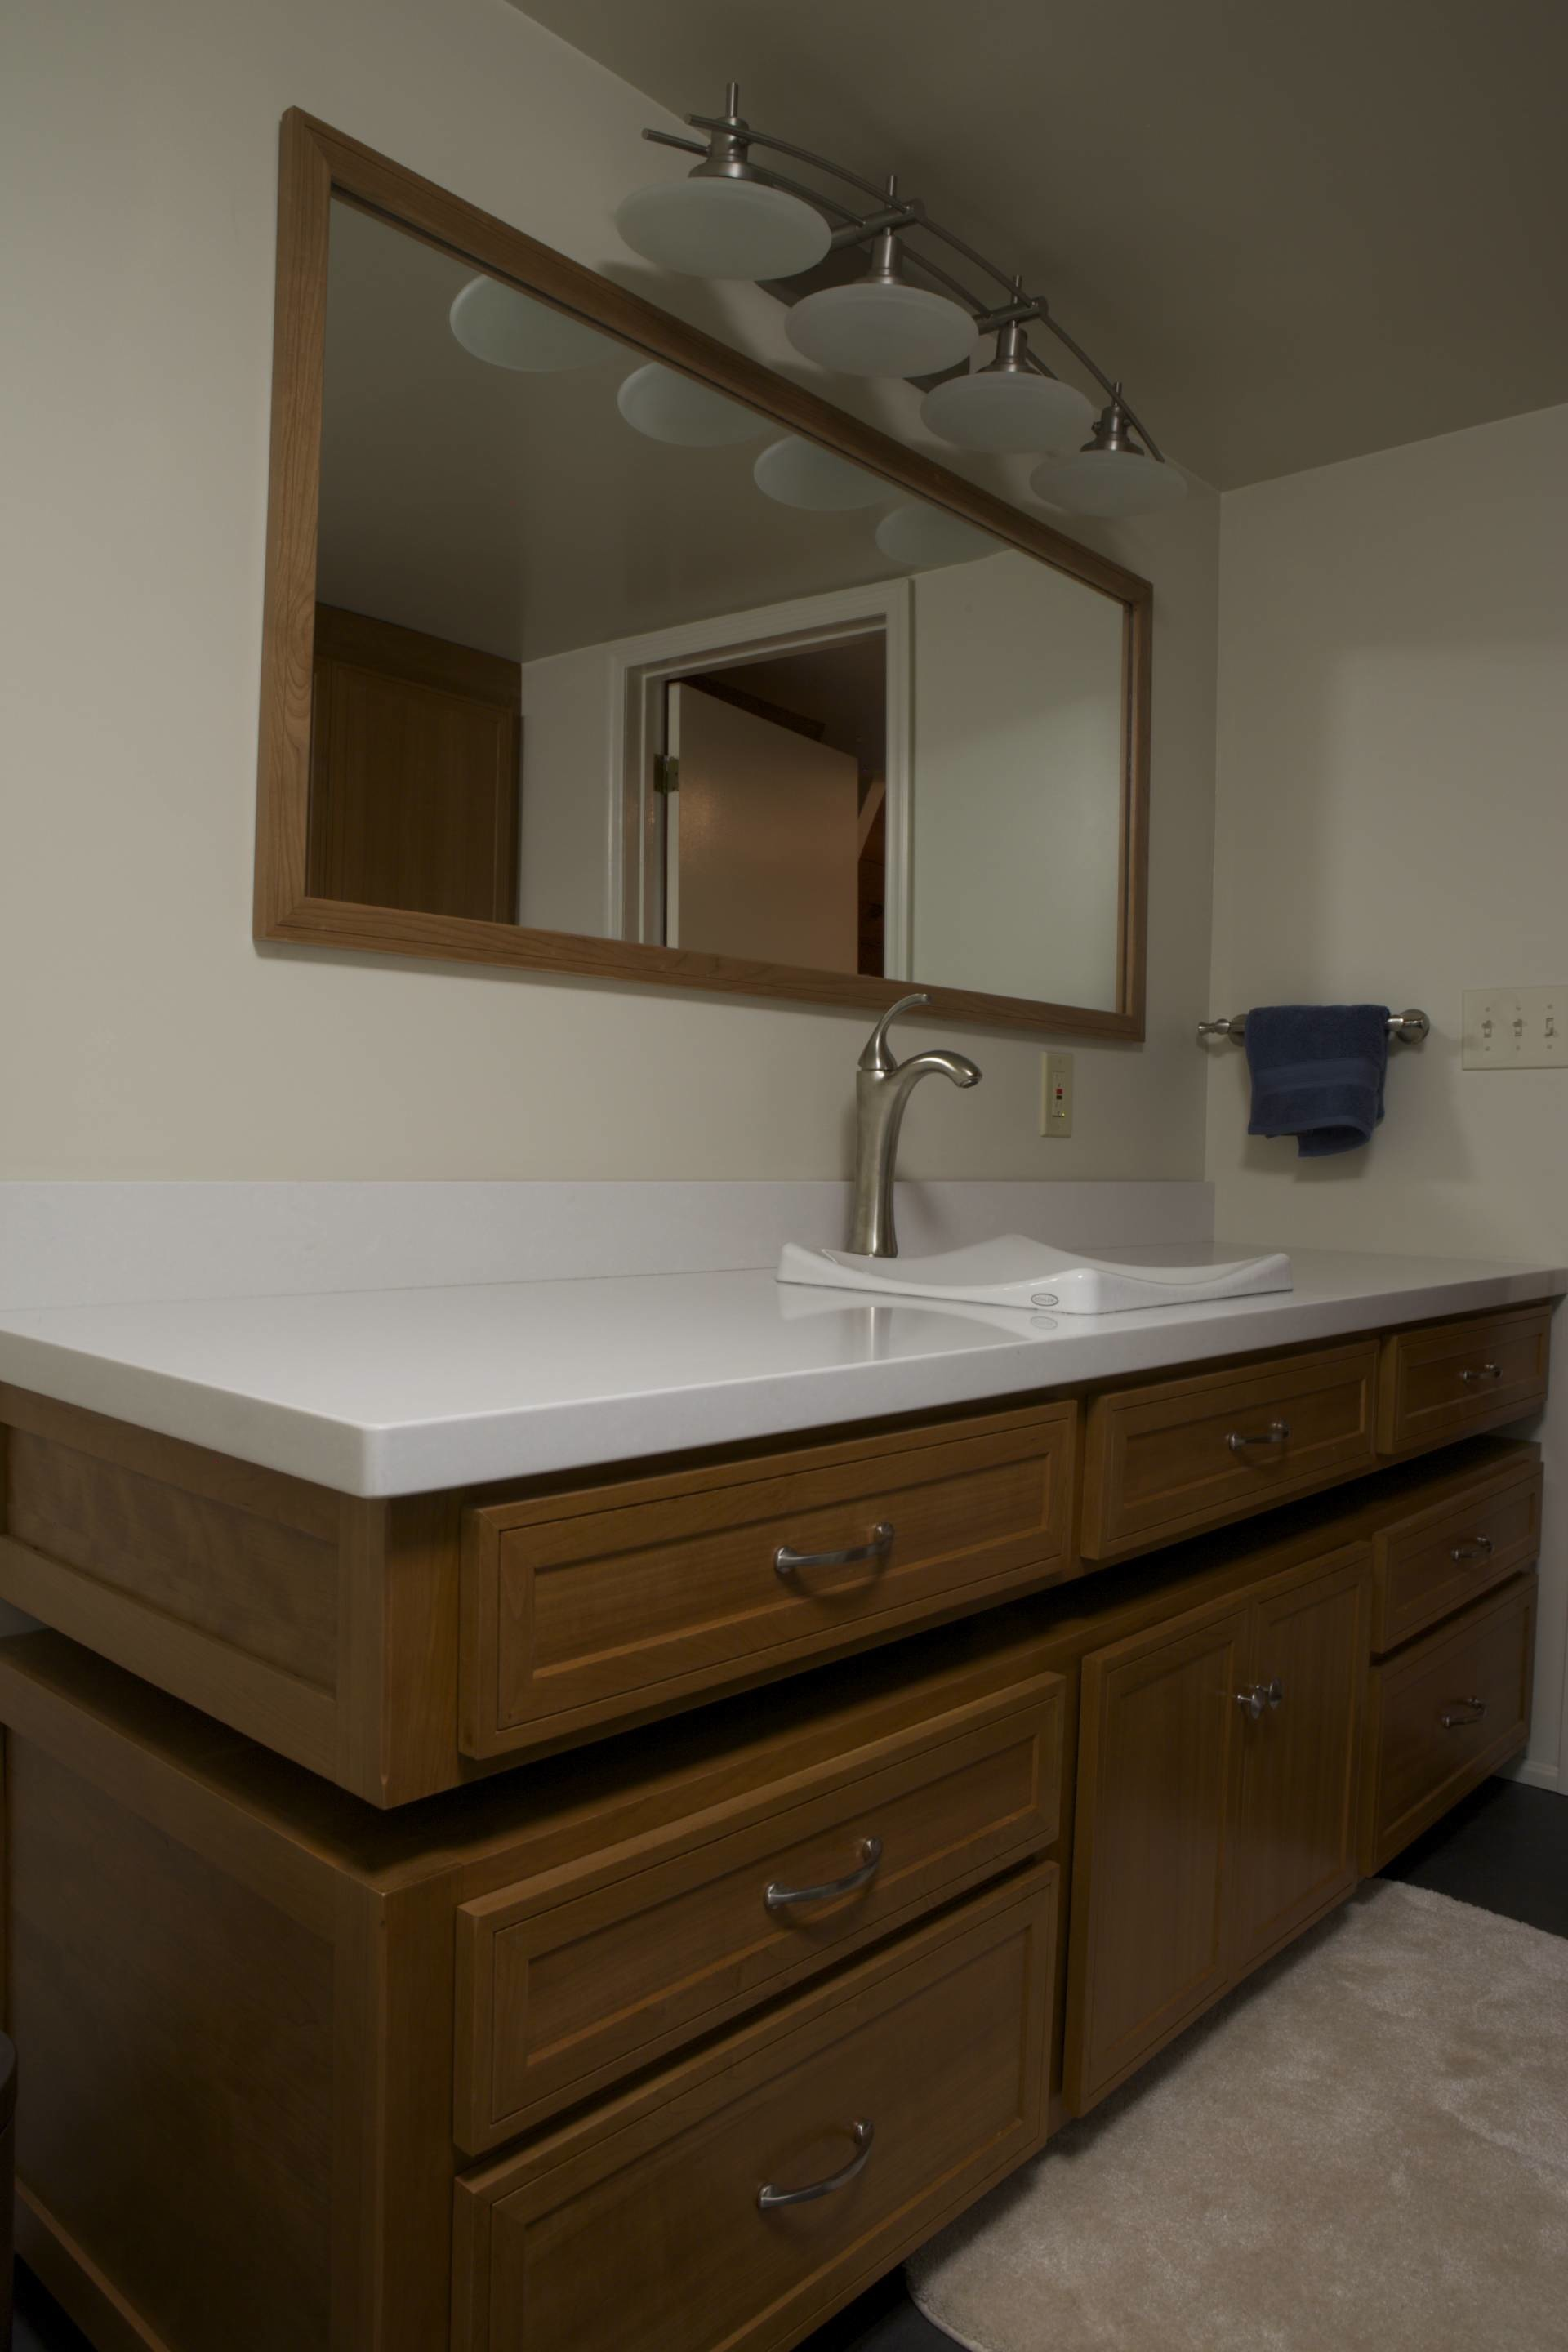 Left Side Sink Vanity : Small Bathroom Vanity Clearance Bathroom Sink Clearance Small Bathroom ...